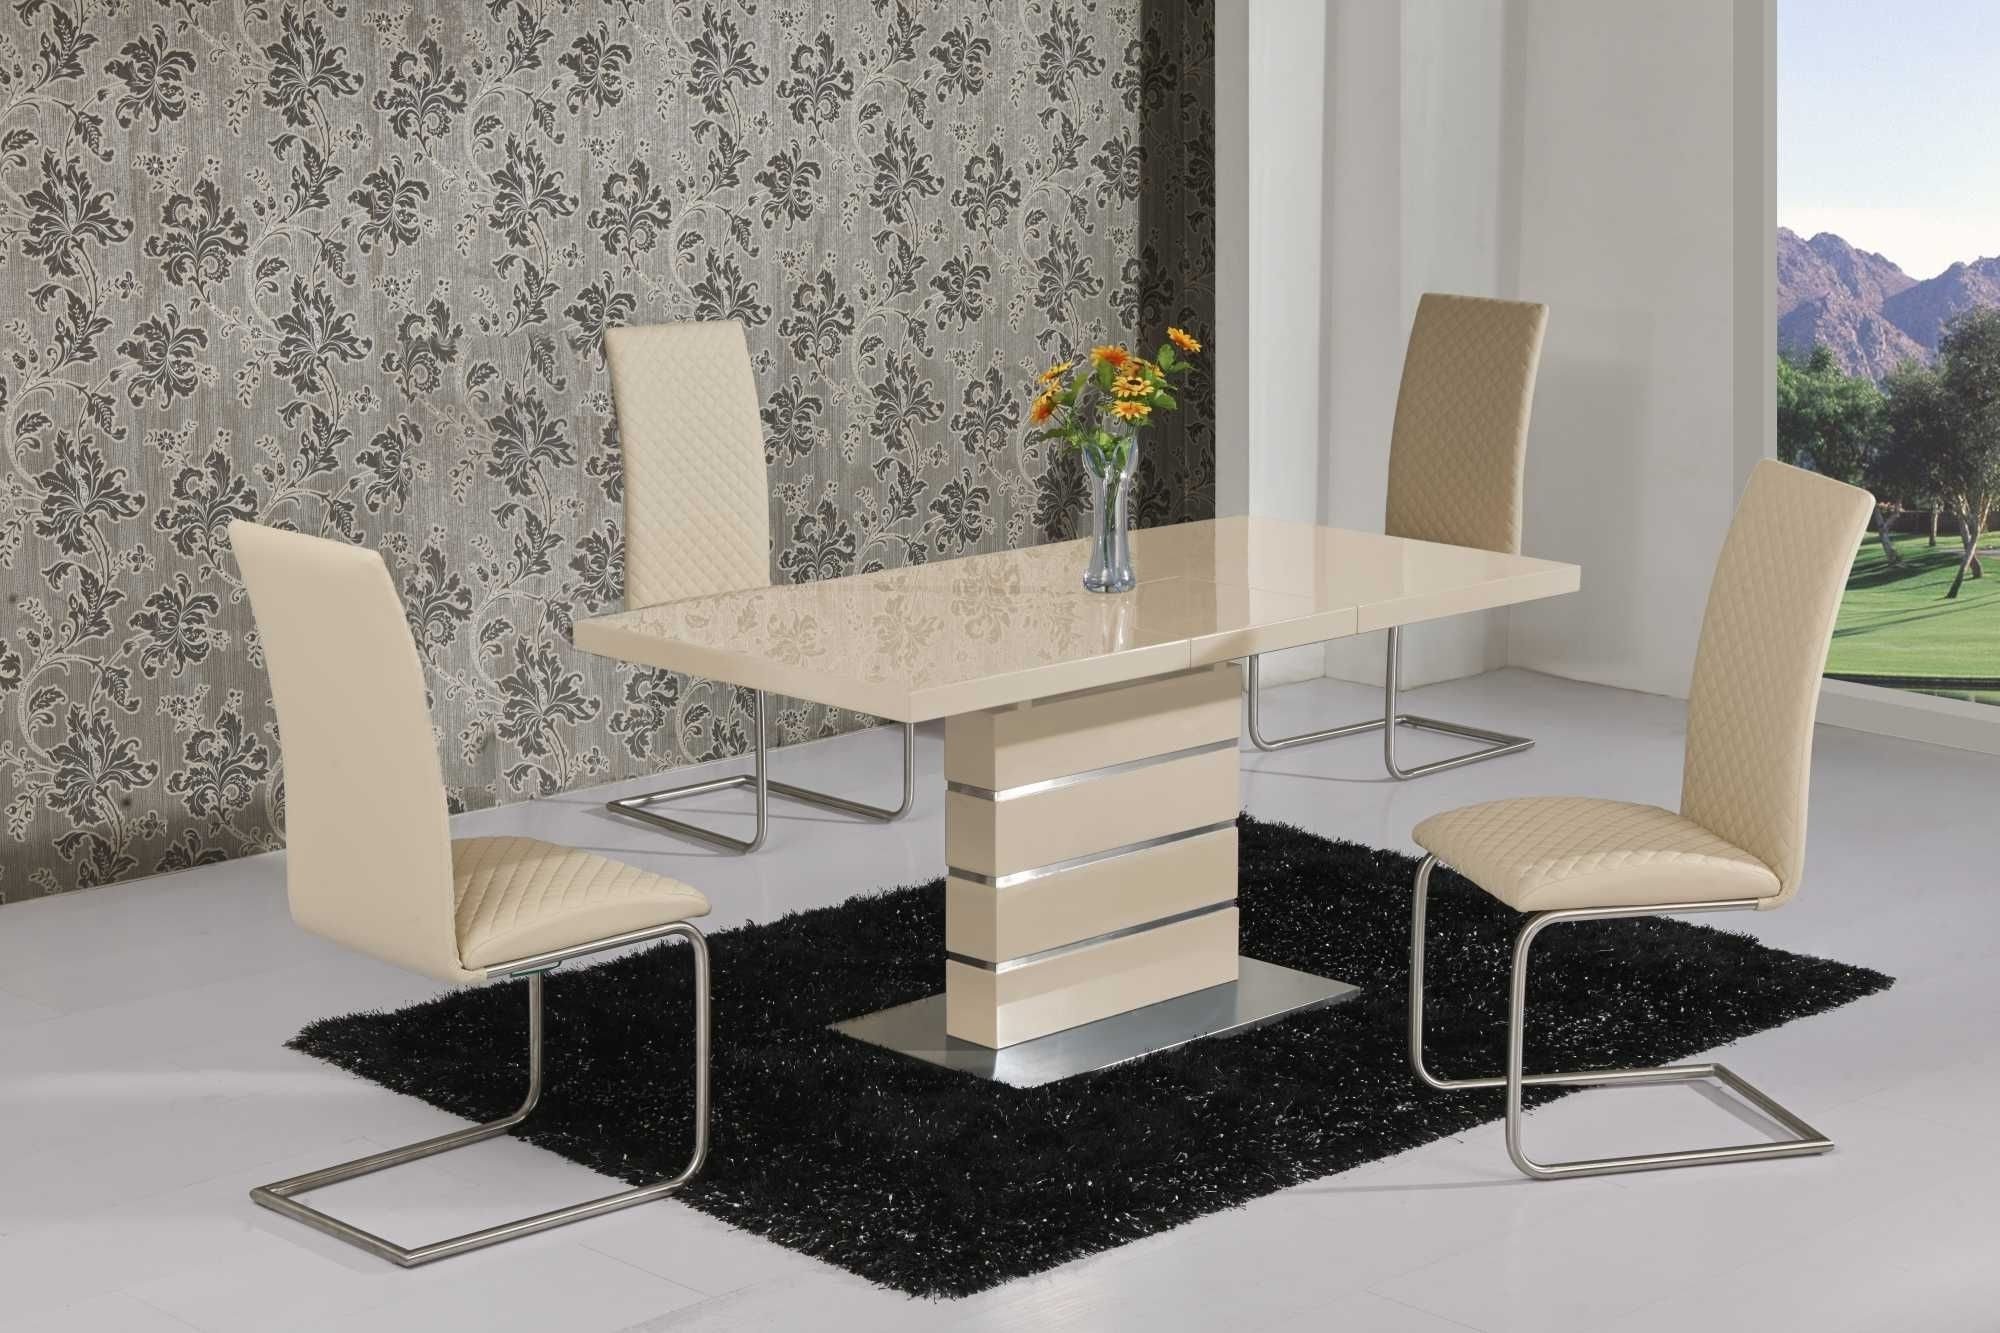 Buy Allison Small Cream Extending Dining Table 120Cm – 160Cm Within Fashionable High Gloss Cream Dining Tables (Gallery 2 of 25)